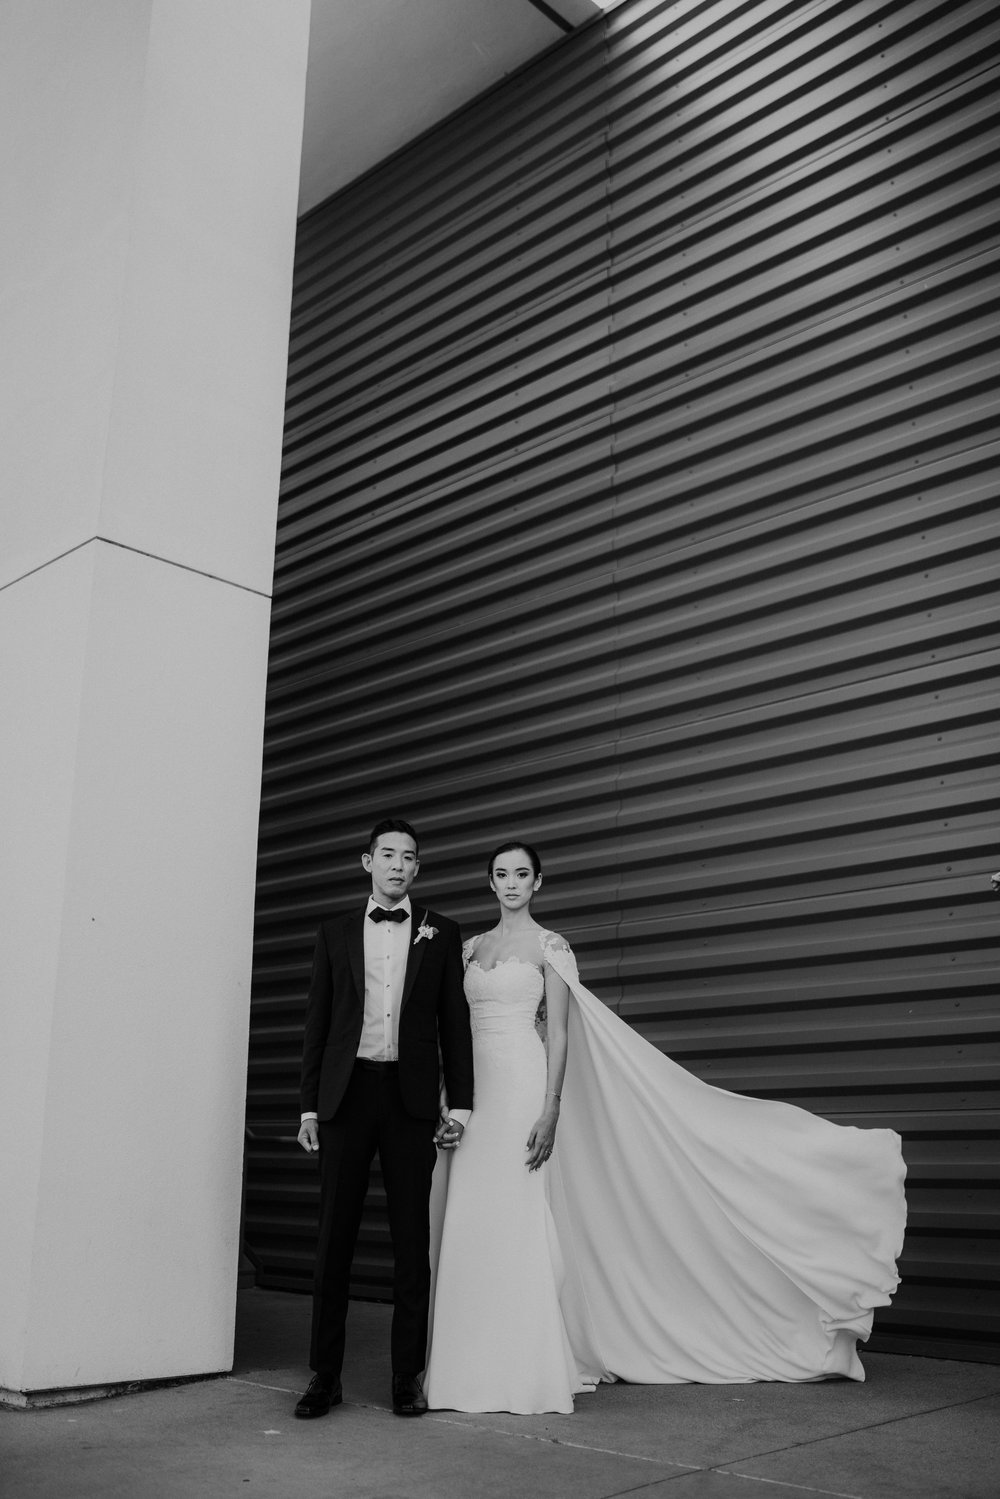 wedding-kristine-francis-franciscoegonzalez-irvine-bride-groom-portraits-98.jpg